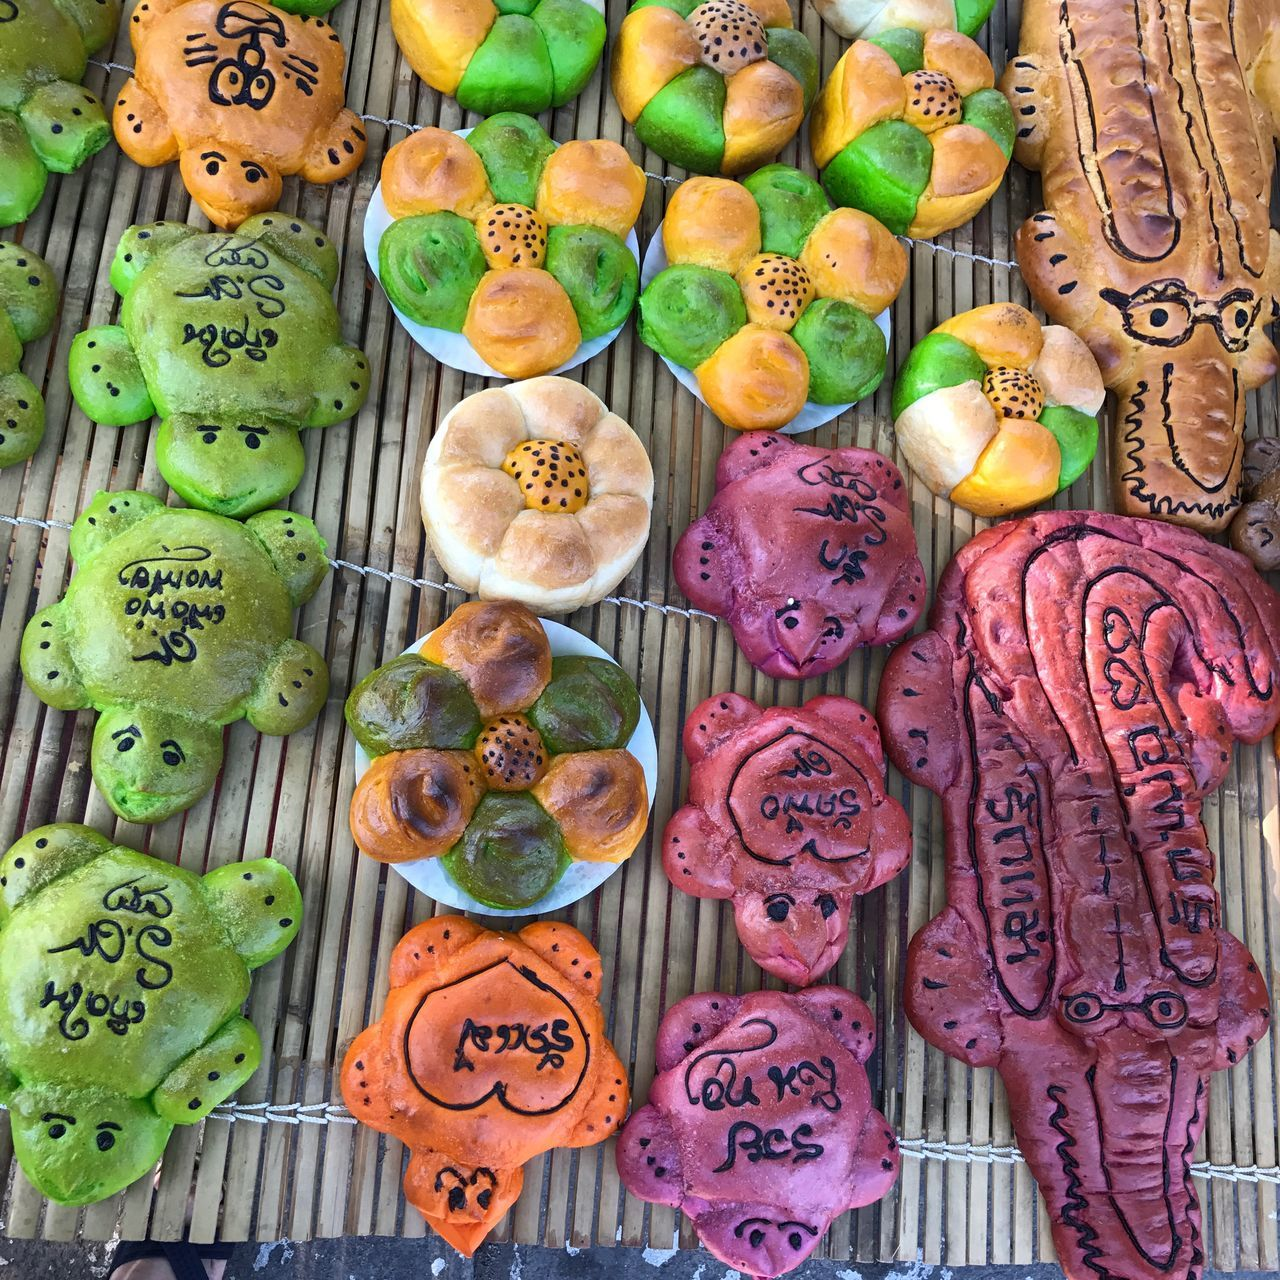 Bread Great Floating On Water Loykrathong Festival Thailand Thaiculture Thailandtravel Festival ASIA Asian Culture Colorful